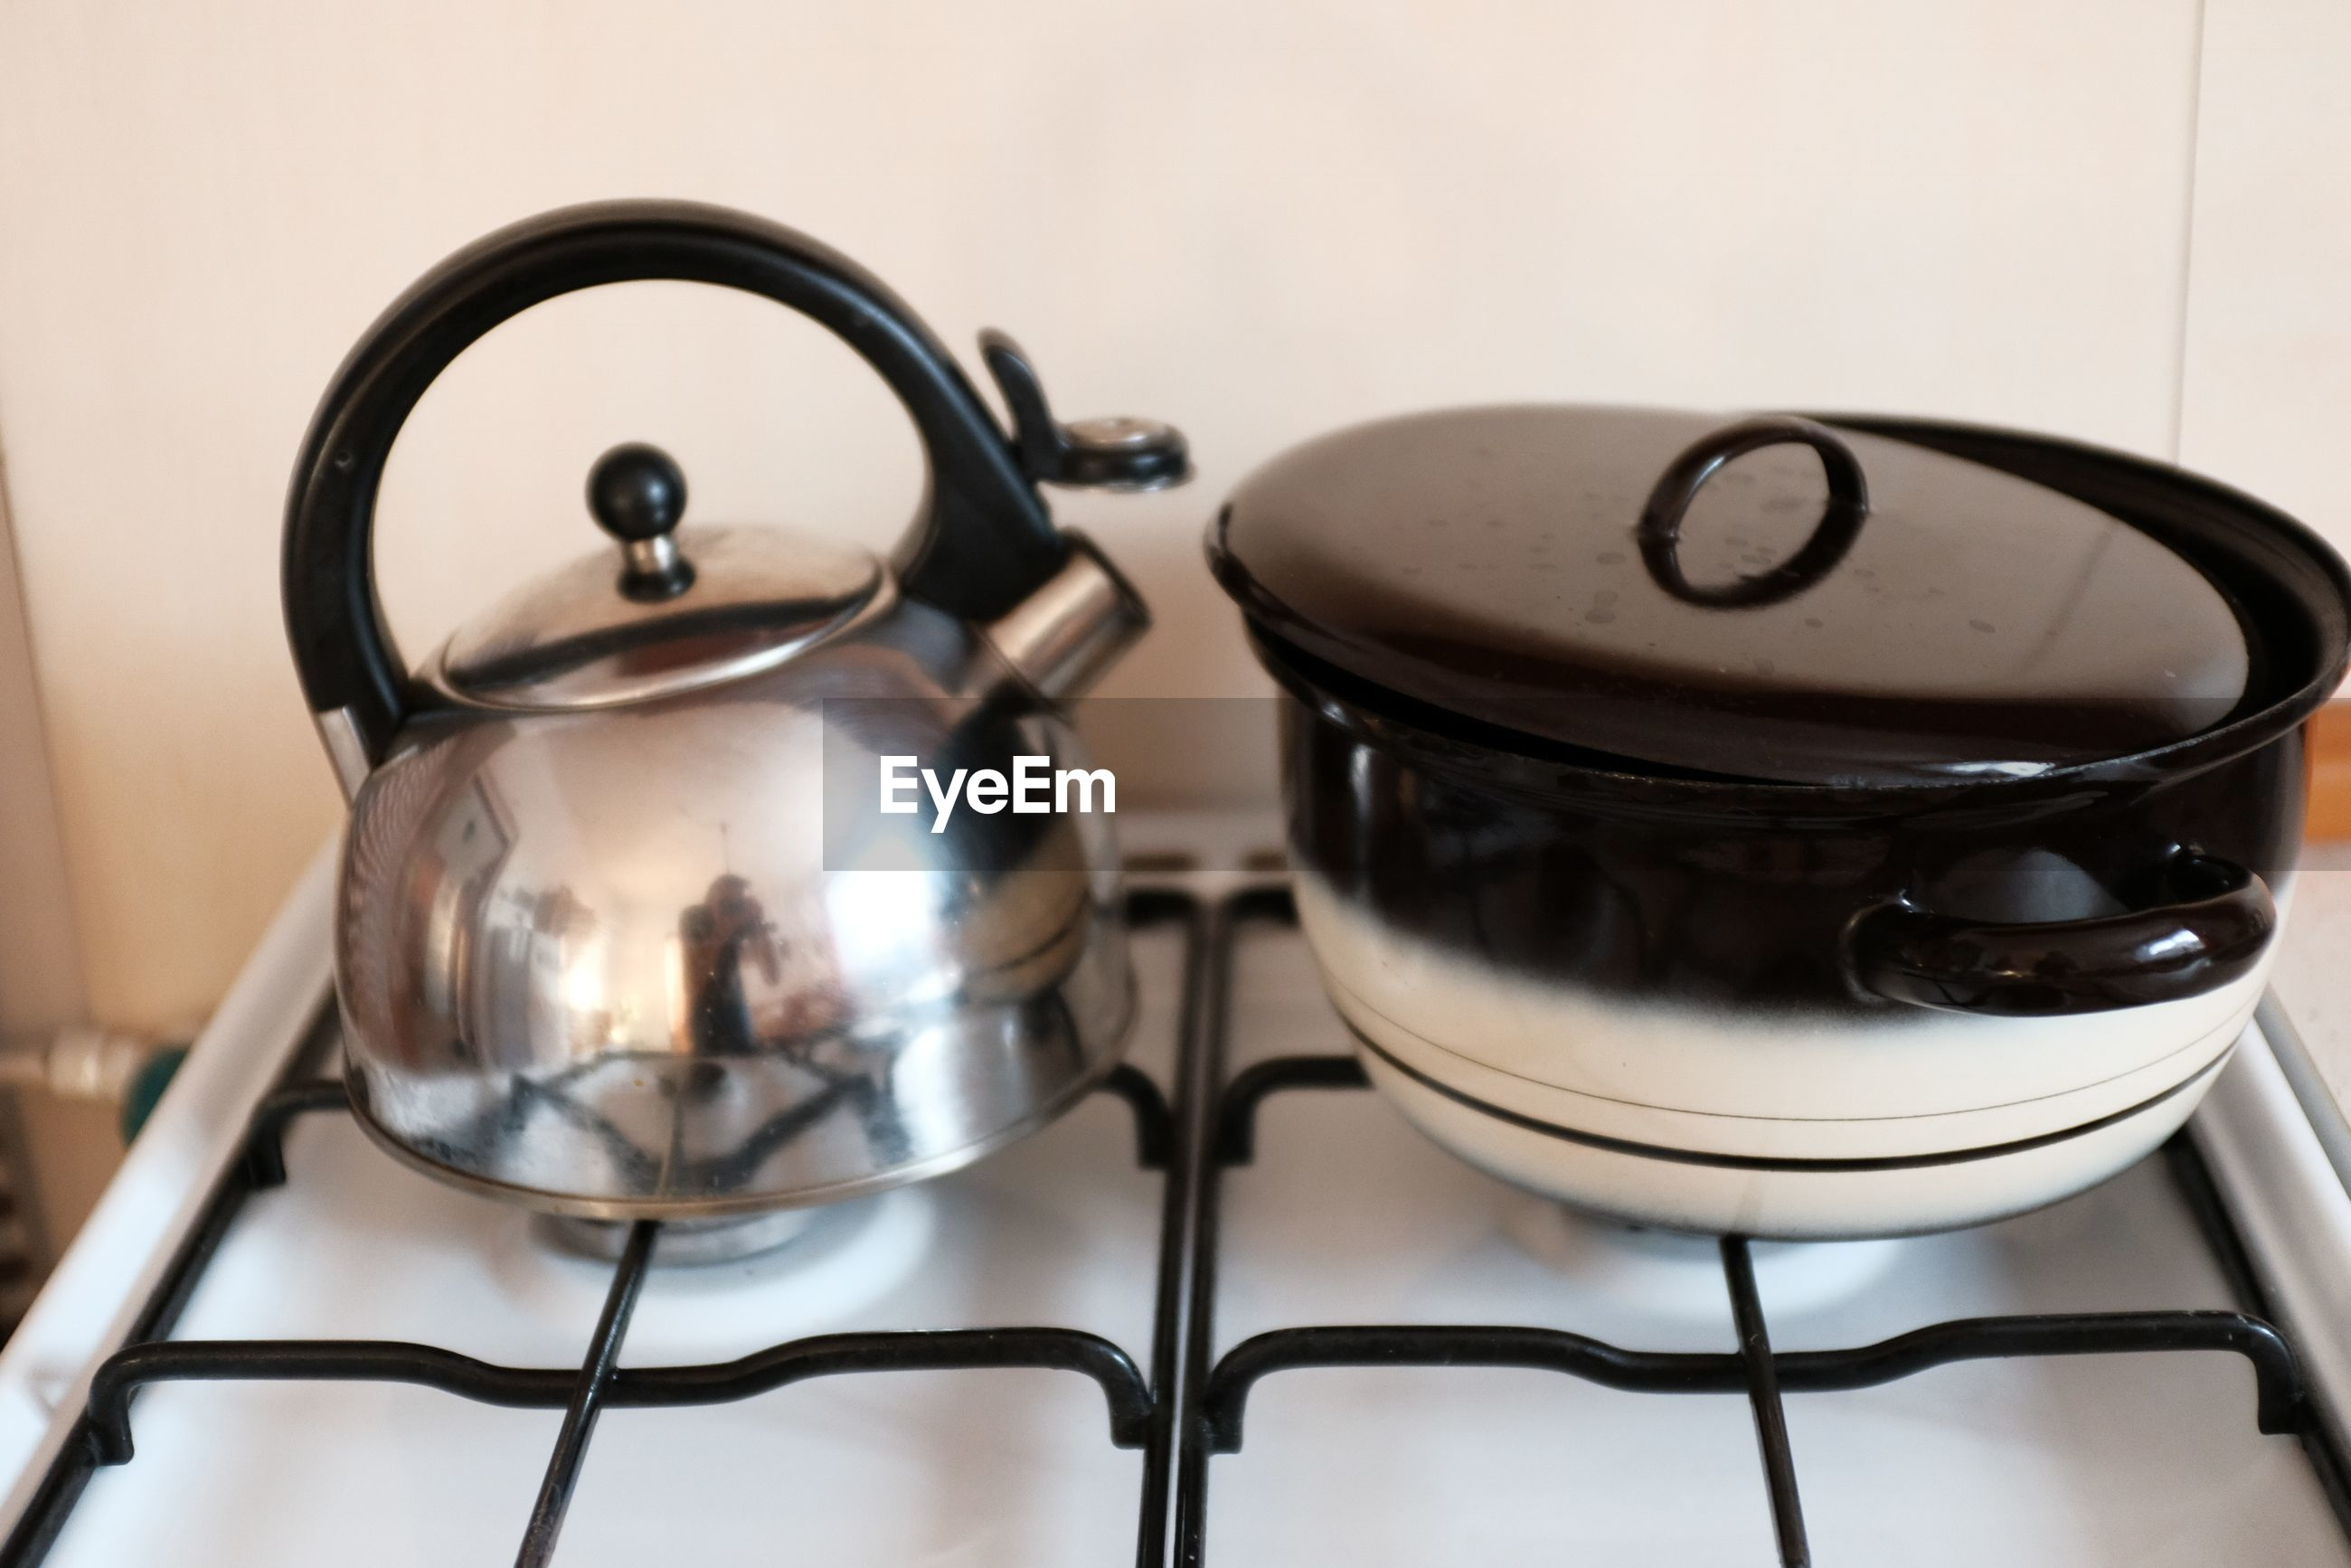 Kettle and container on stove at home